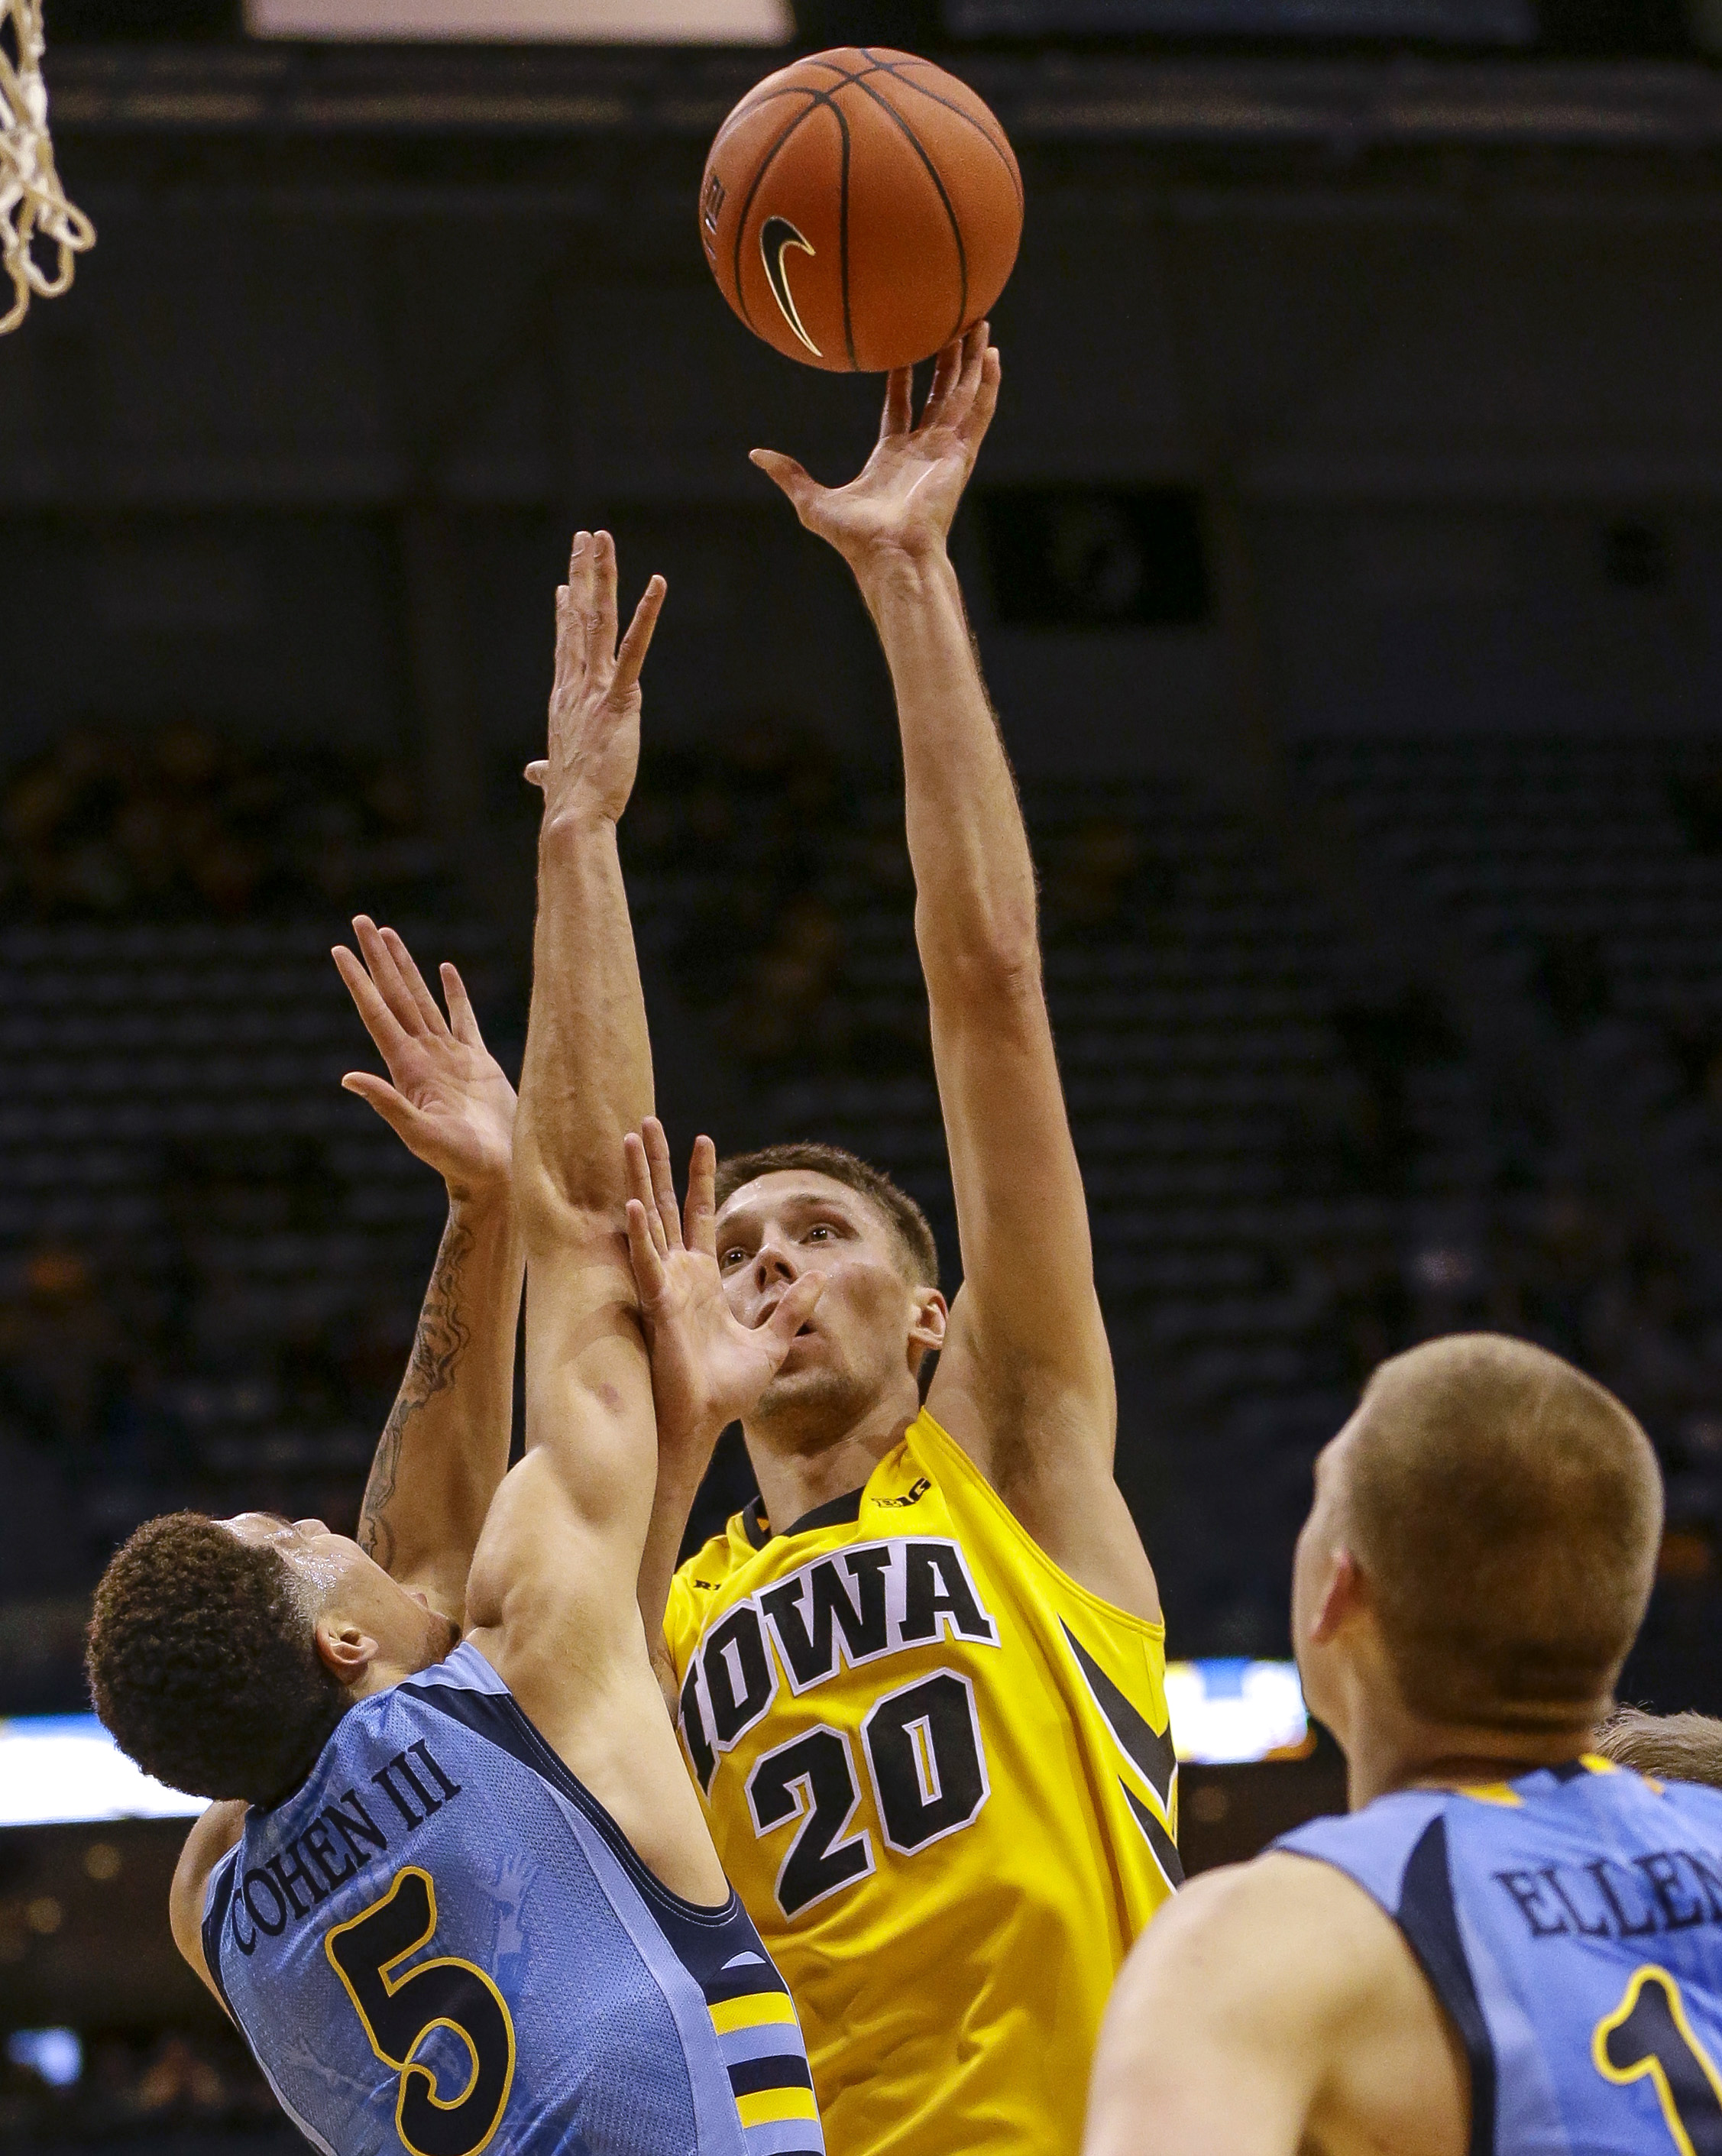 Marquette's Sandy Cohen III defends Iowa's Jarrod Uthoff as he shoots during the second half of an NCAA college basketball game Thursday, Nov. 19, 2015, in Milwaukee. (AP Photo/Tom Lynn)